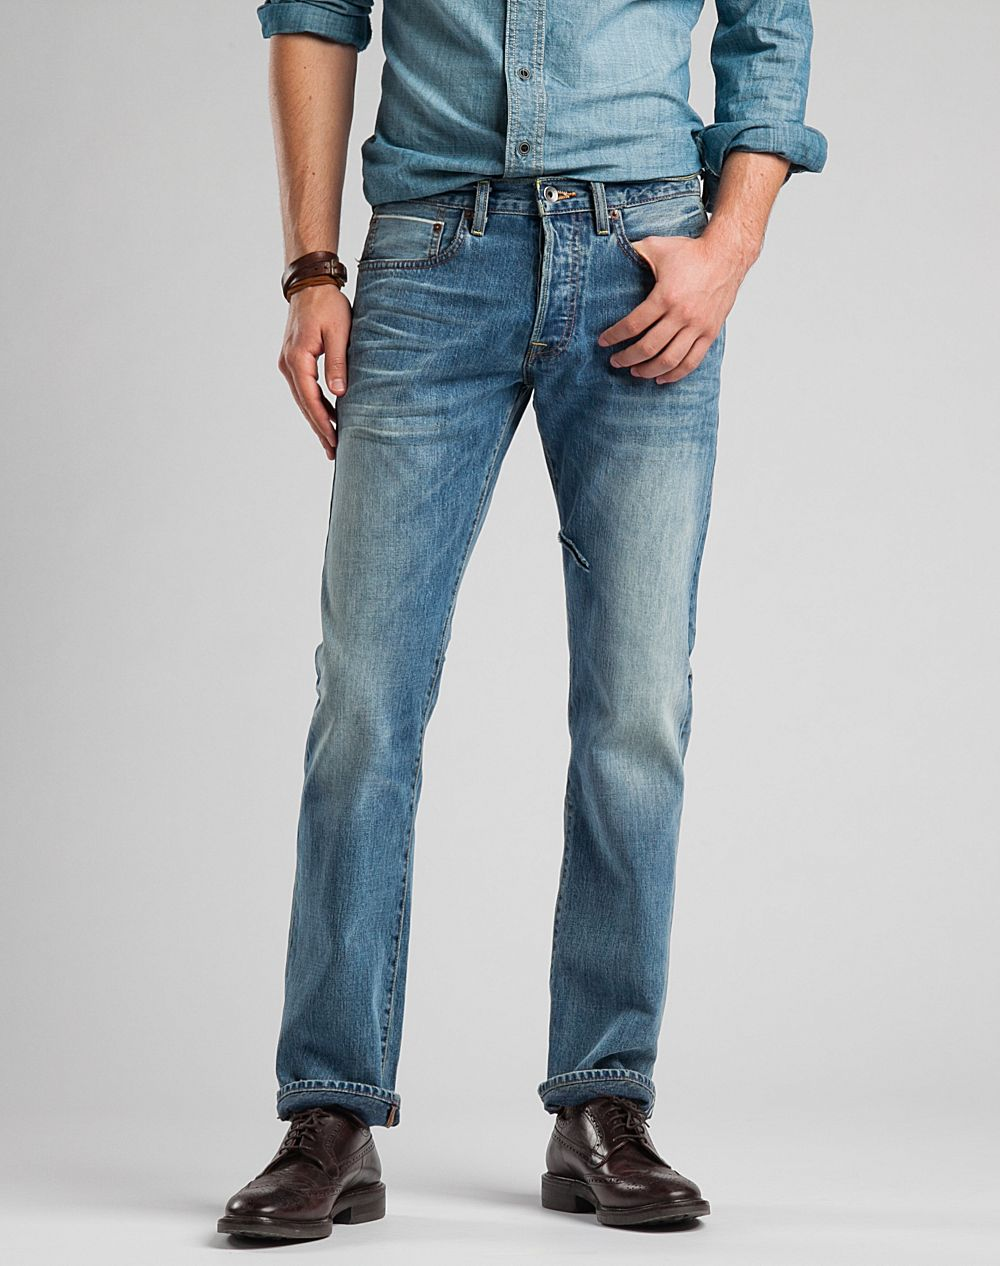 how to tell the brand of lucky jeans